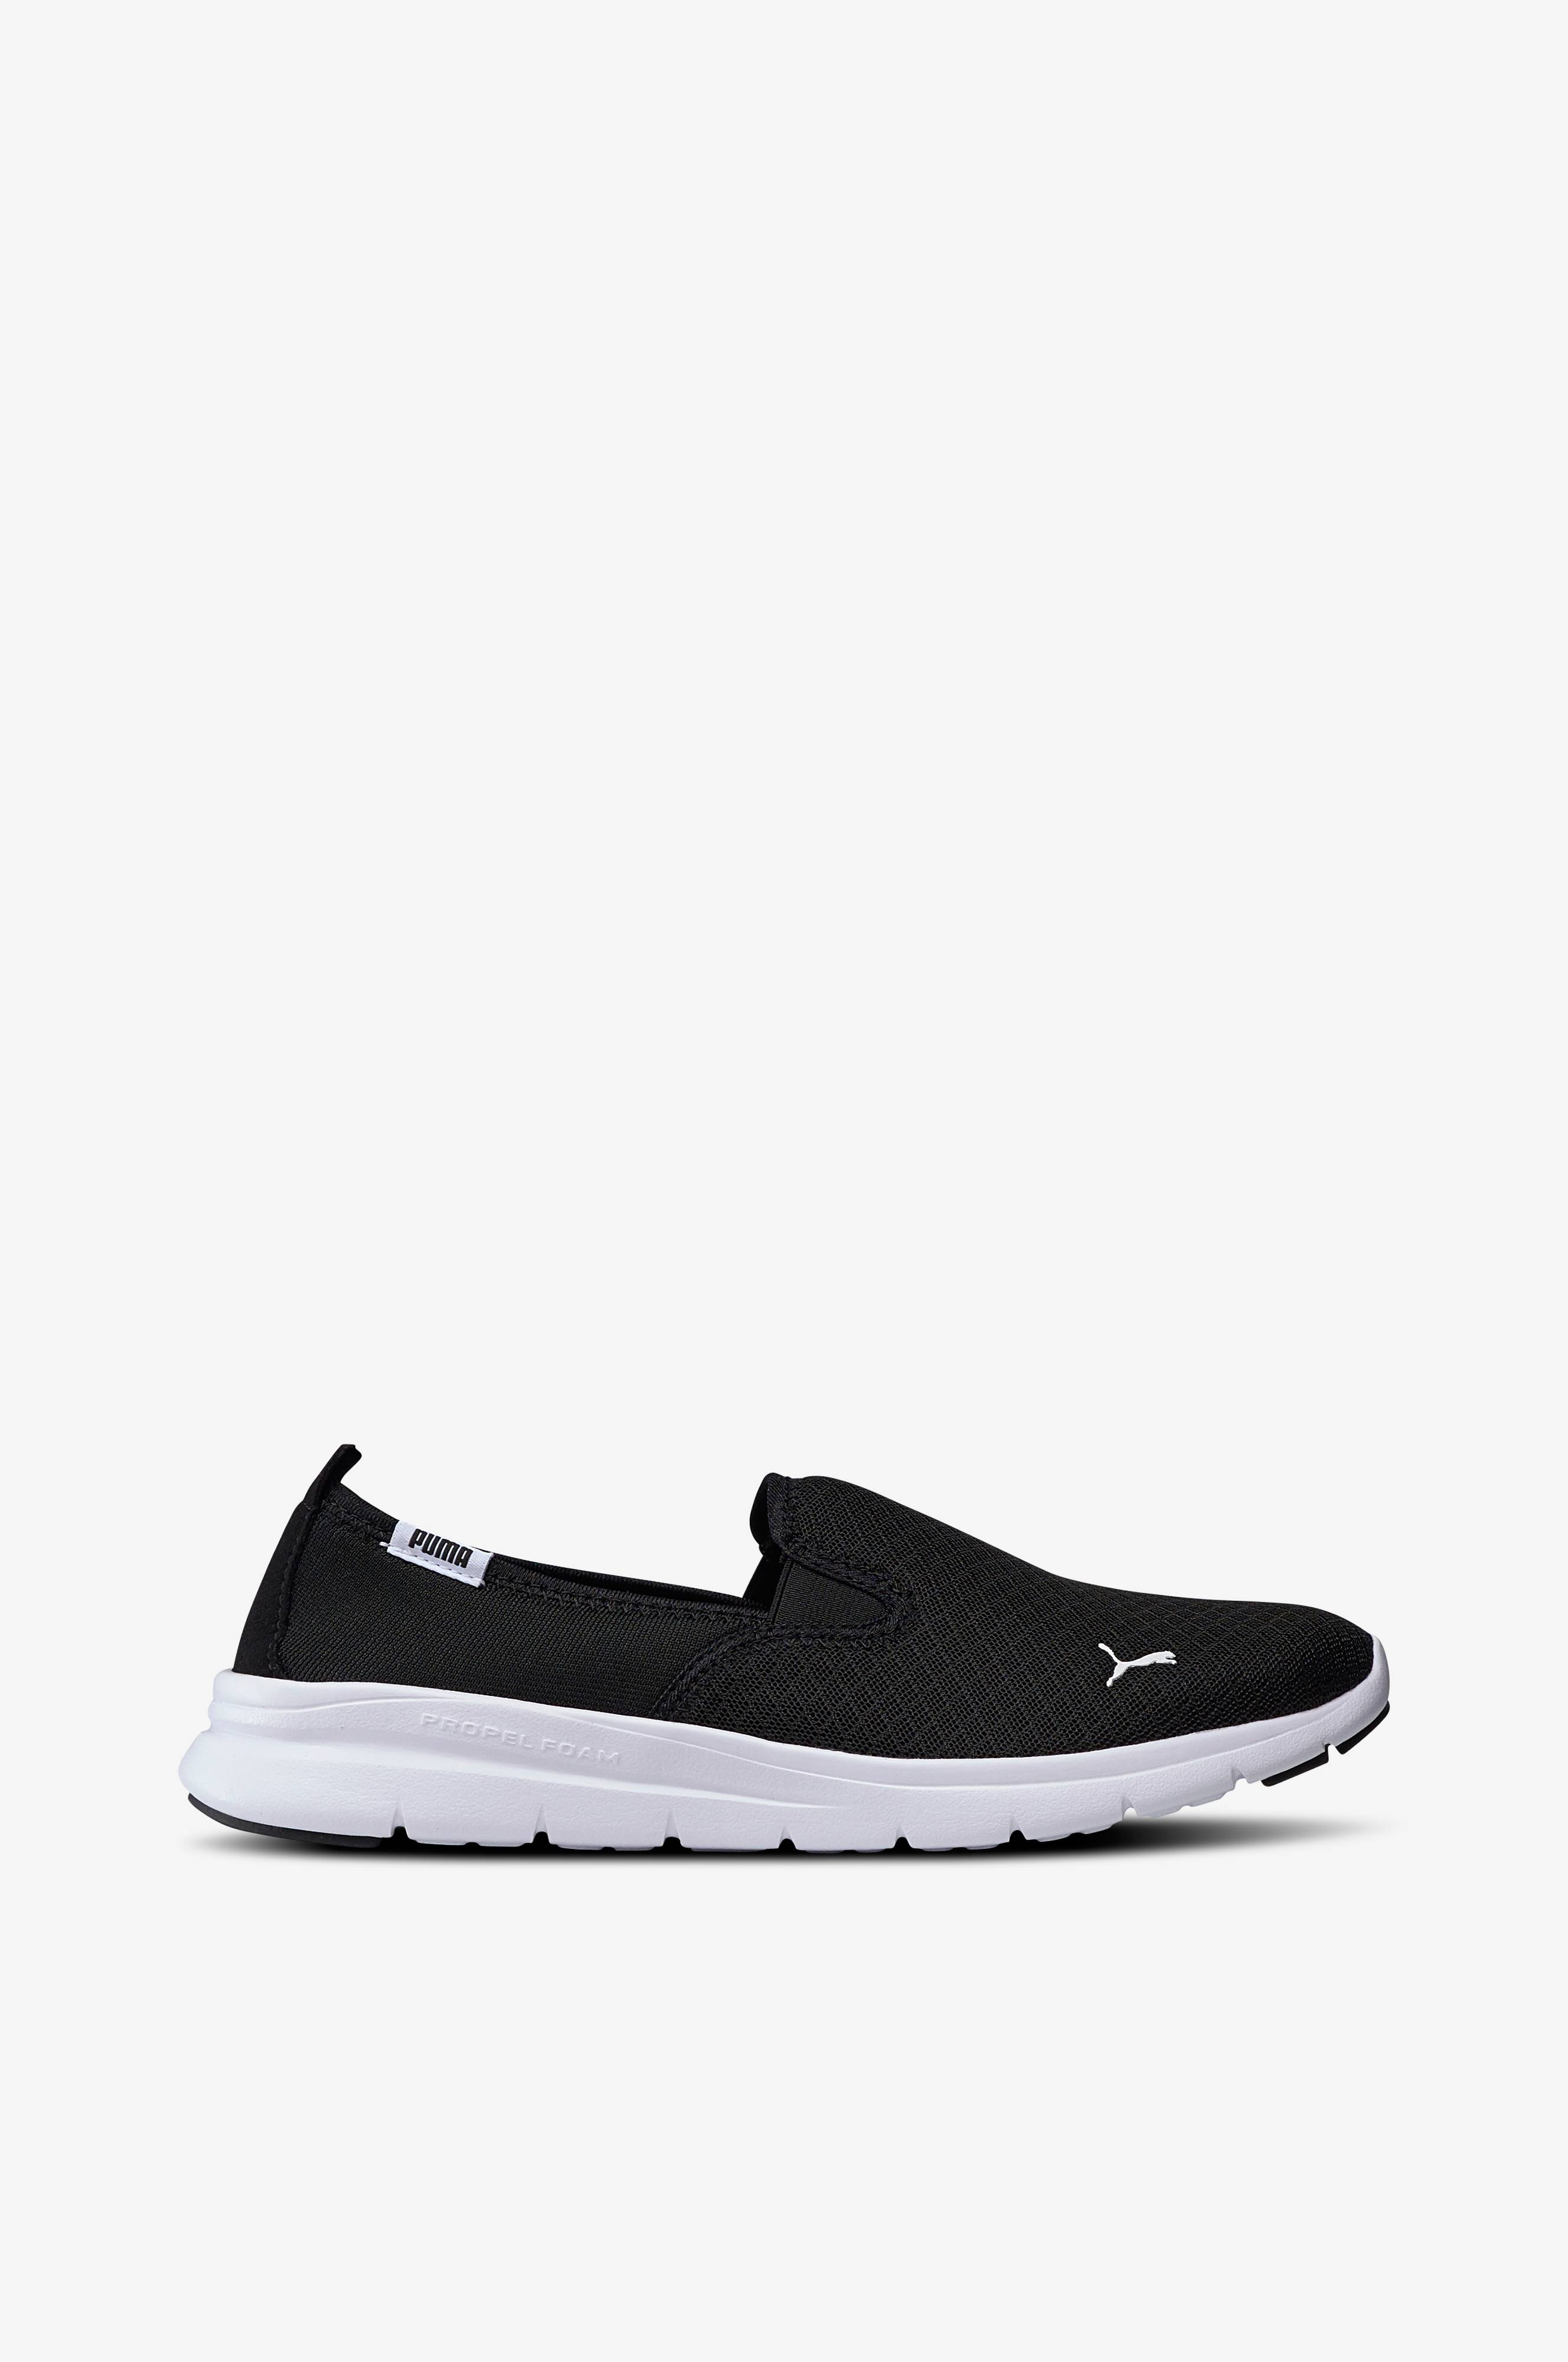 Puma Sneakers Flex Essential Slip On Svart Dame Ellos.no